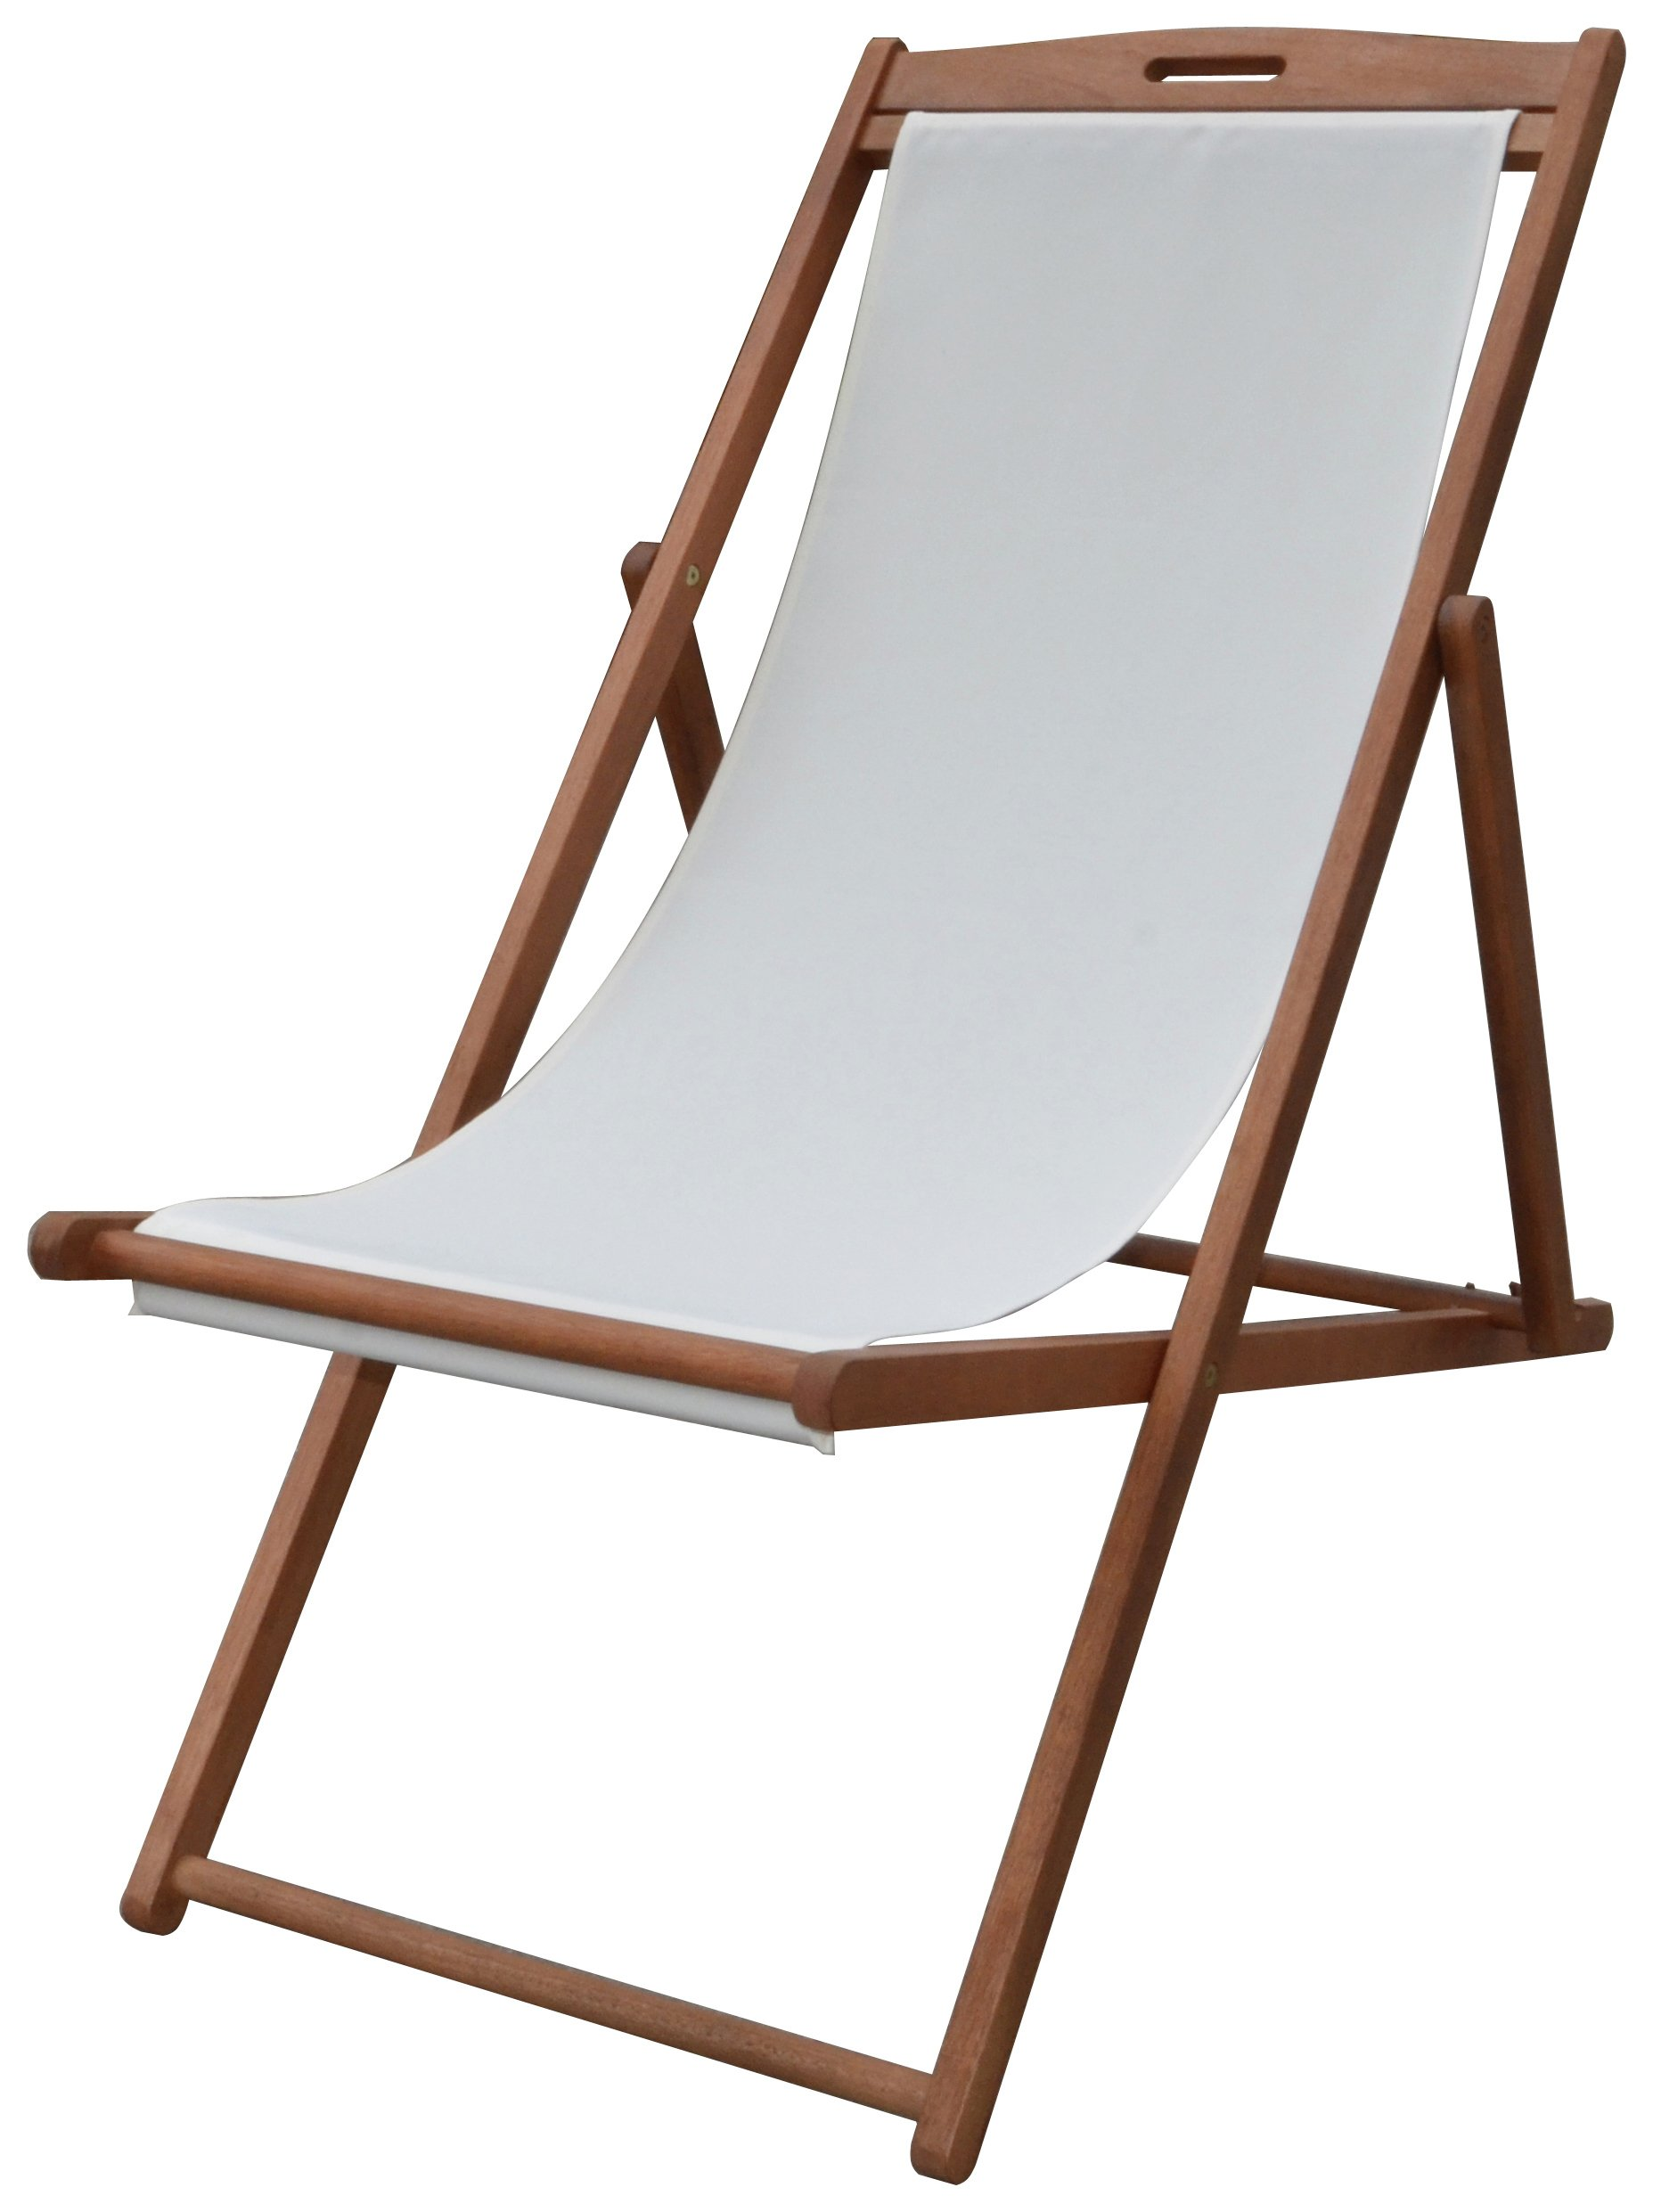 buy home deck chair - cream at argos.co.uk - your online shop for